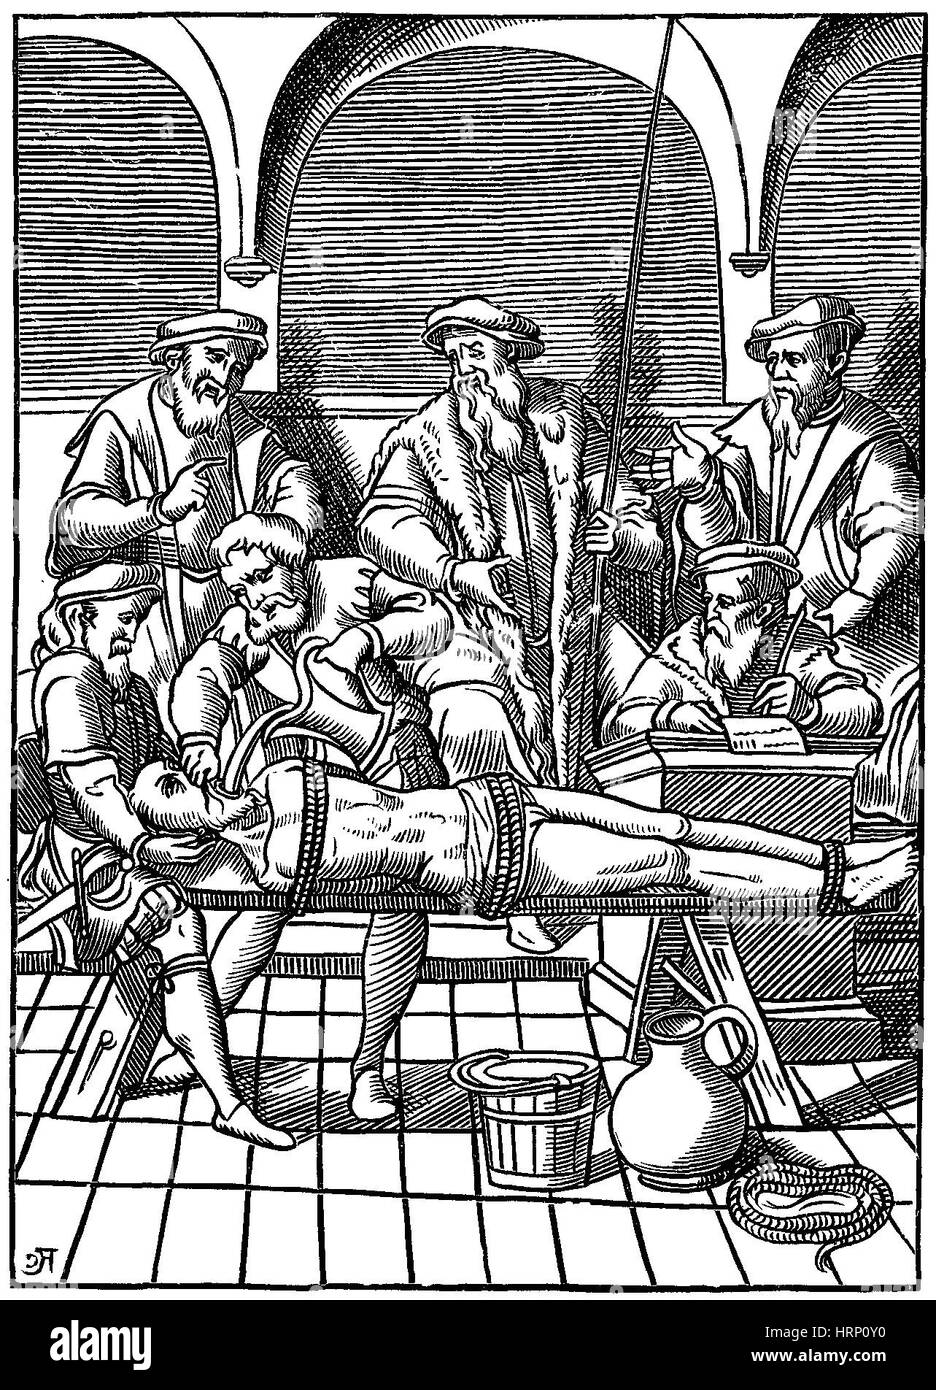 Medieval Inquisition, Water Torture - Stock Image